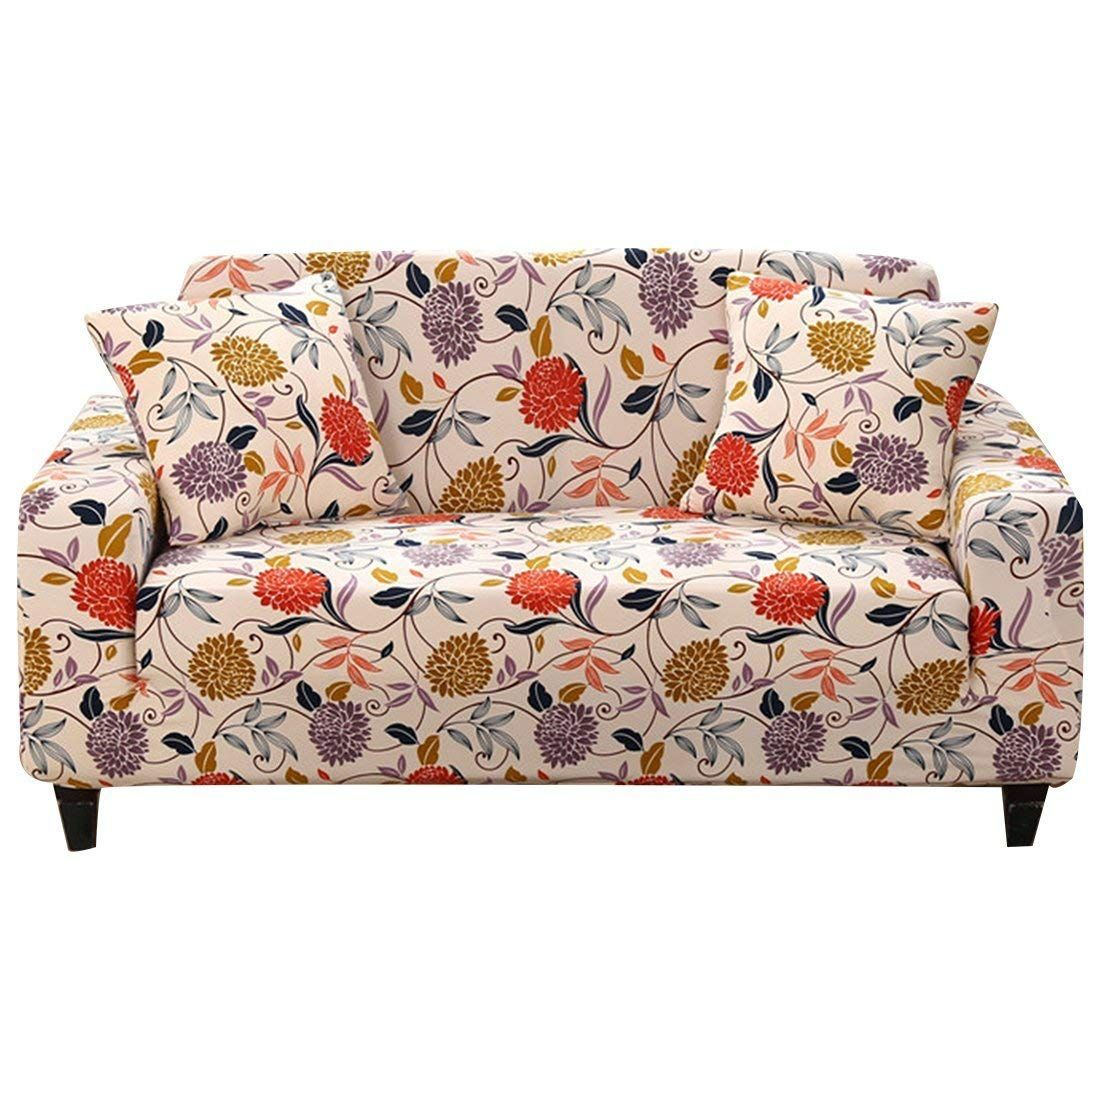 Amazon Com Forcheer Stretch Couch Covers Sofa Slipcovers Fitted Loveseat Cover Seat Furniture Pr Living Room Furniture Trends Furniture Trends Loveseat Covers